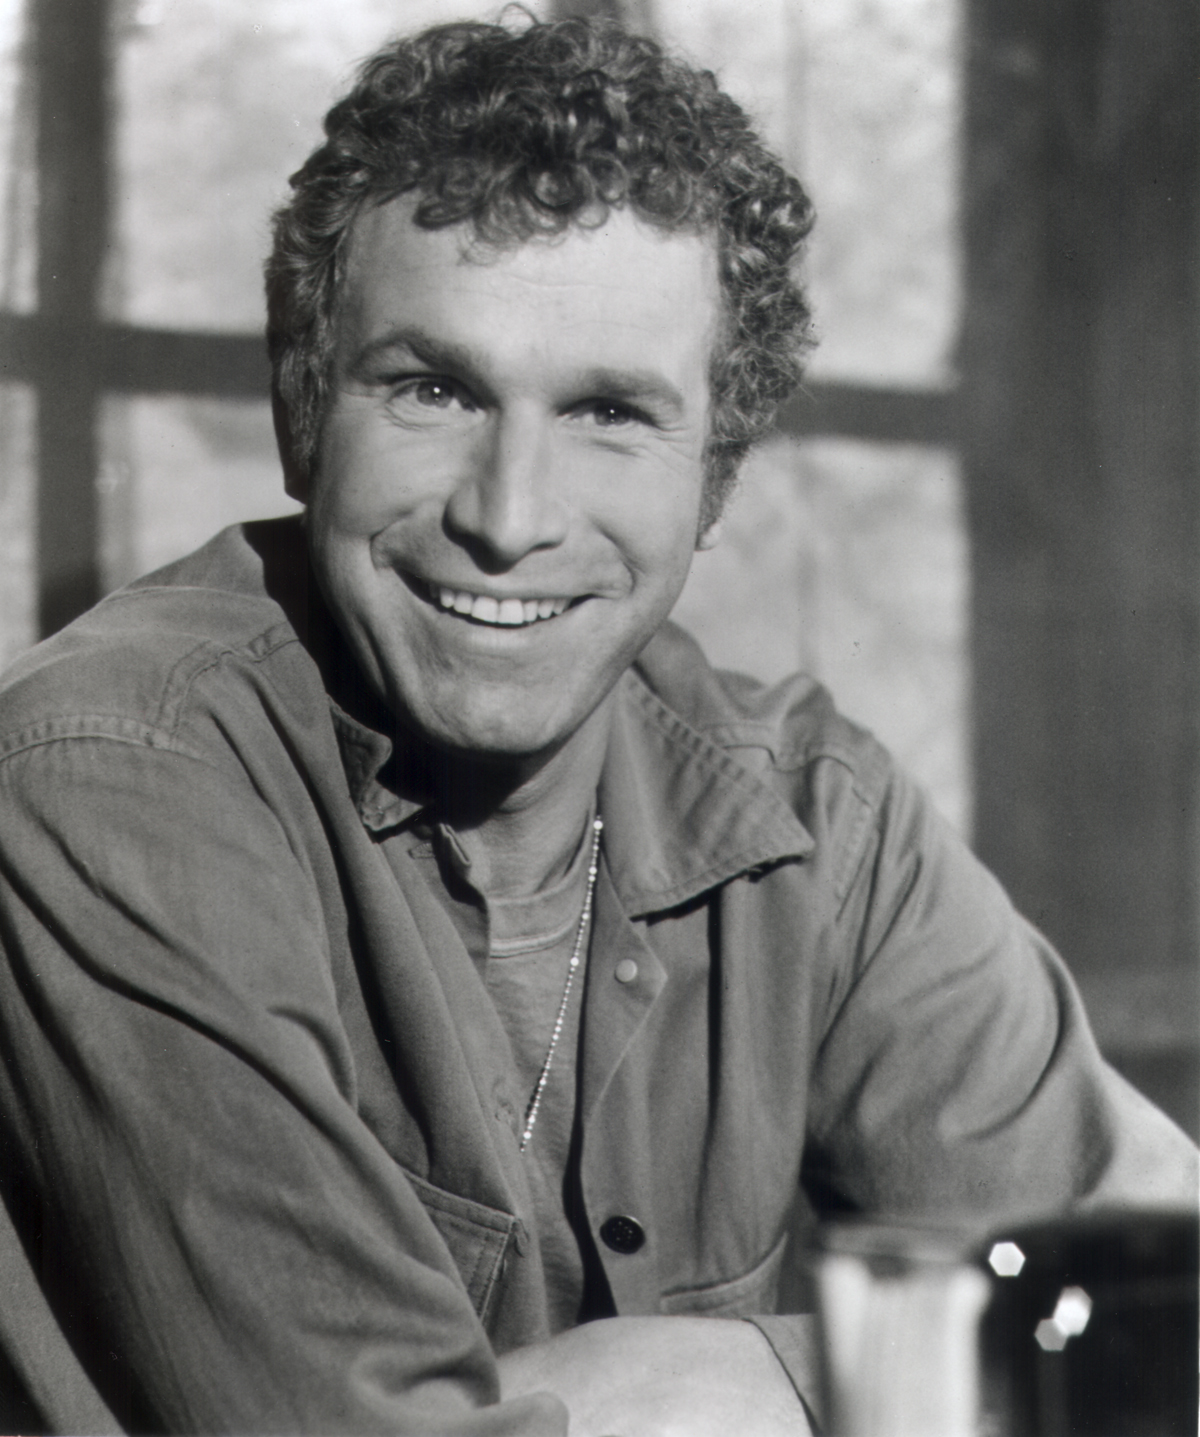 Wayne rogers trapper john on m a s h dead at 82 wayne rogers